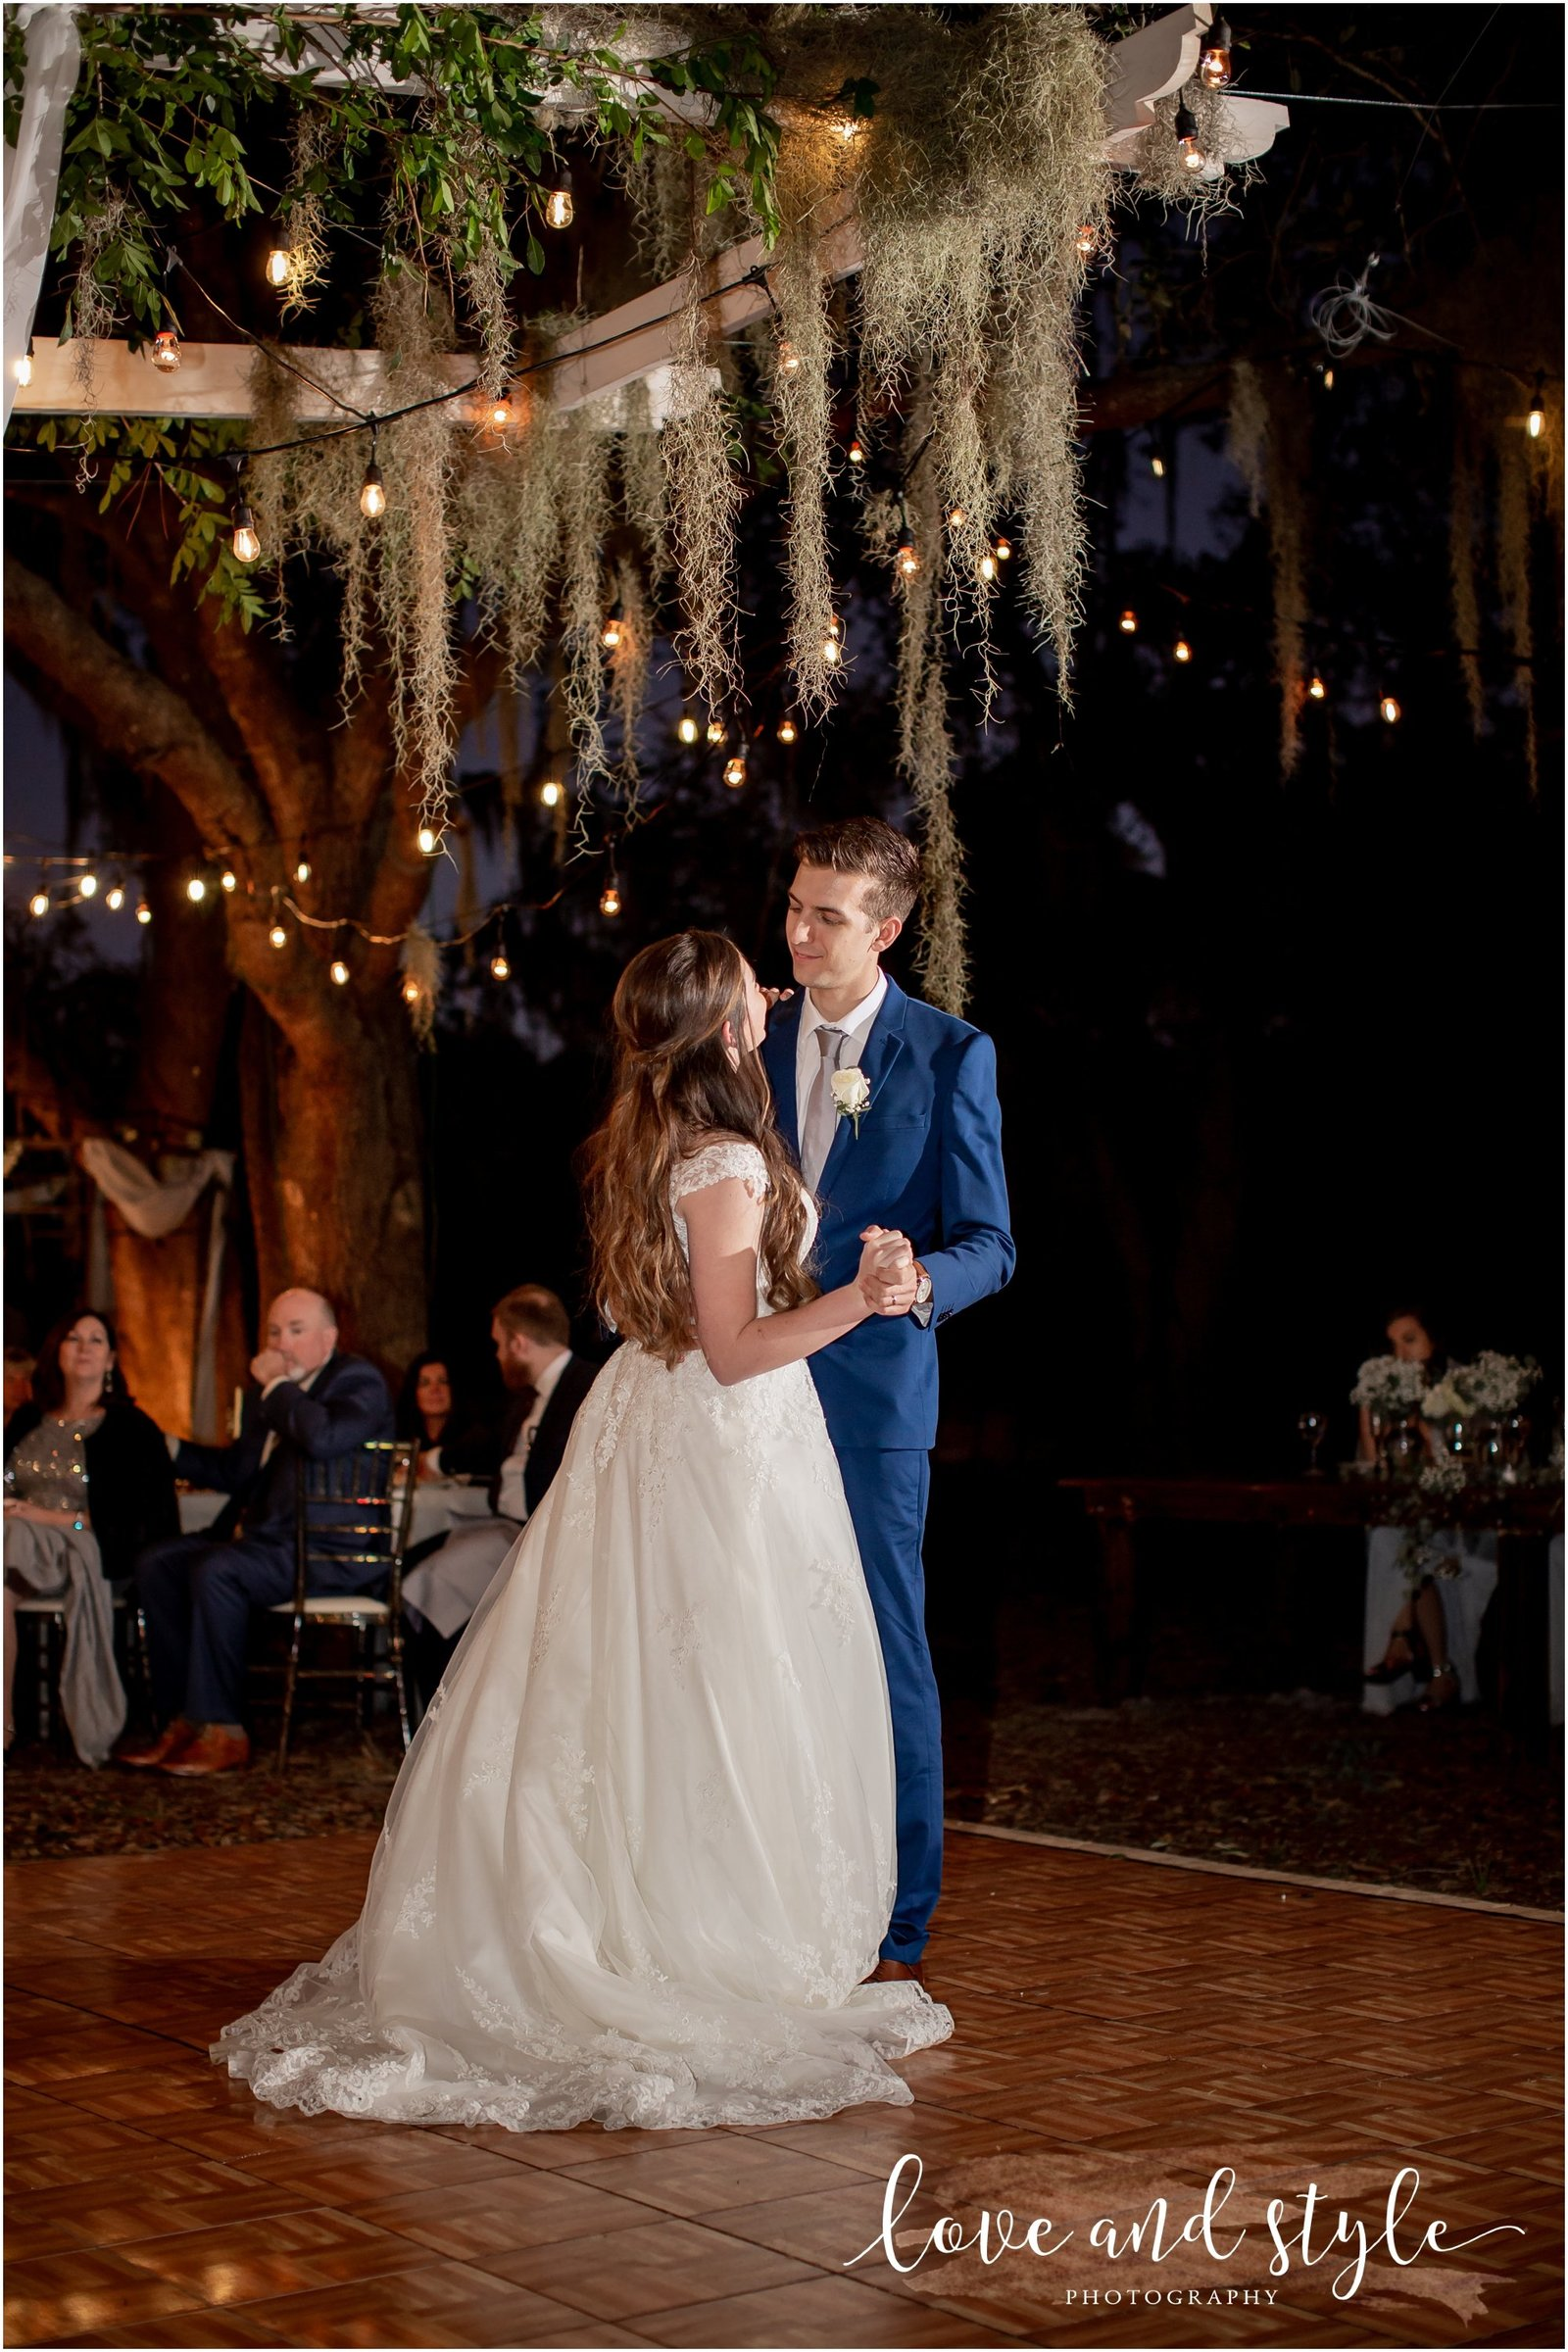 Bride and Groom dancing for the first time as husband and wife  at The Barn at Chapel Creek Wedding venue in Venice, Florida